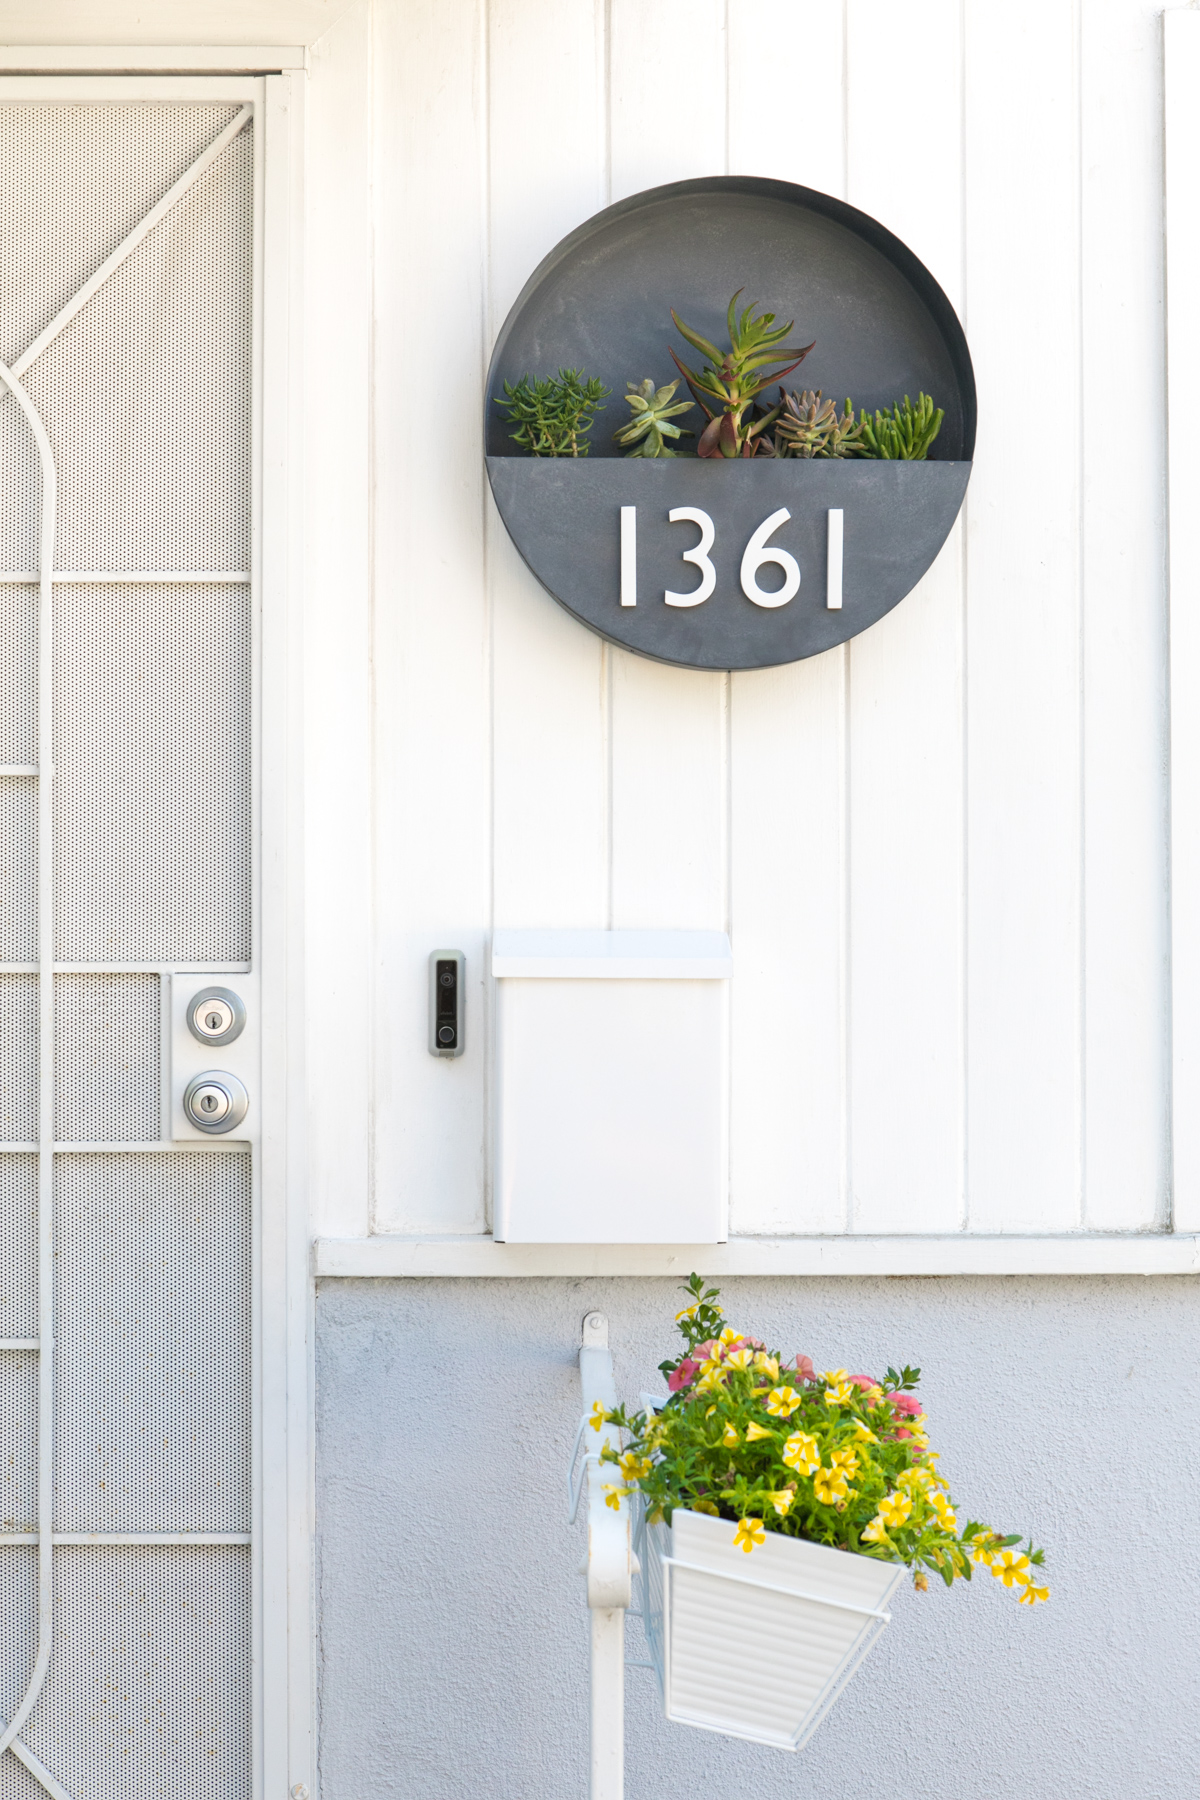 Learn How To Make Your Own Modern House Number Wall Planter! Itu0027s A Great  Way